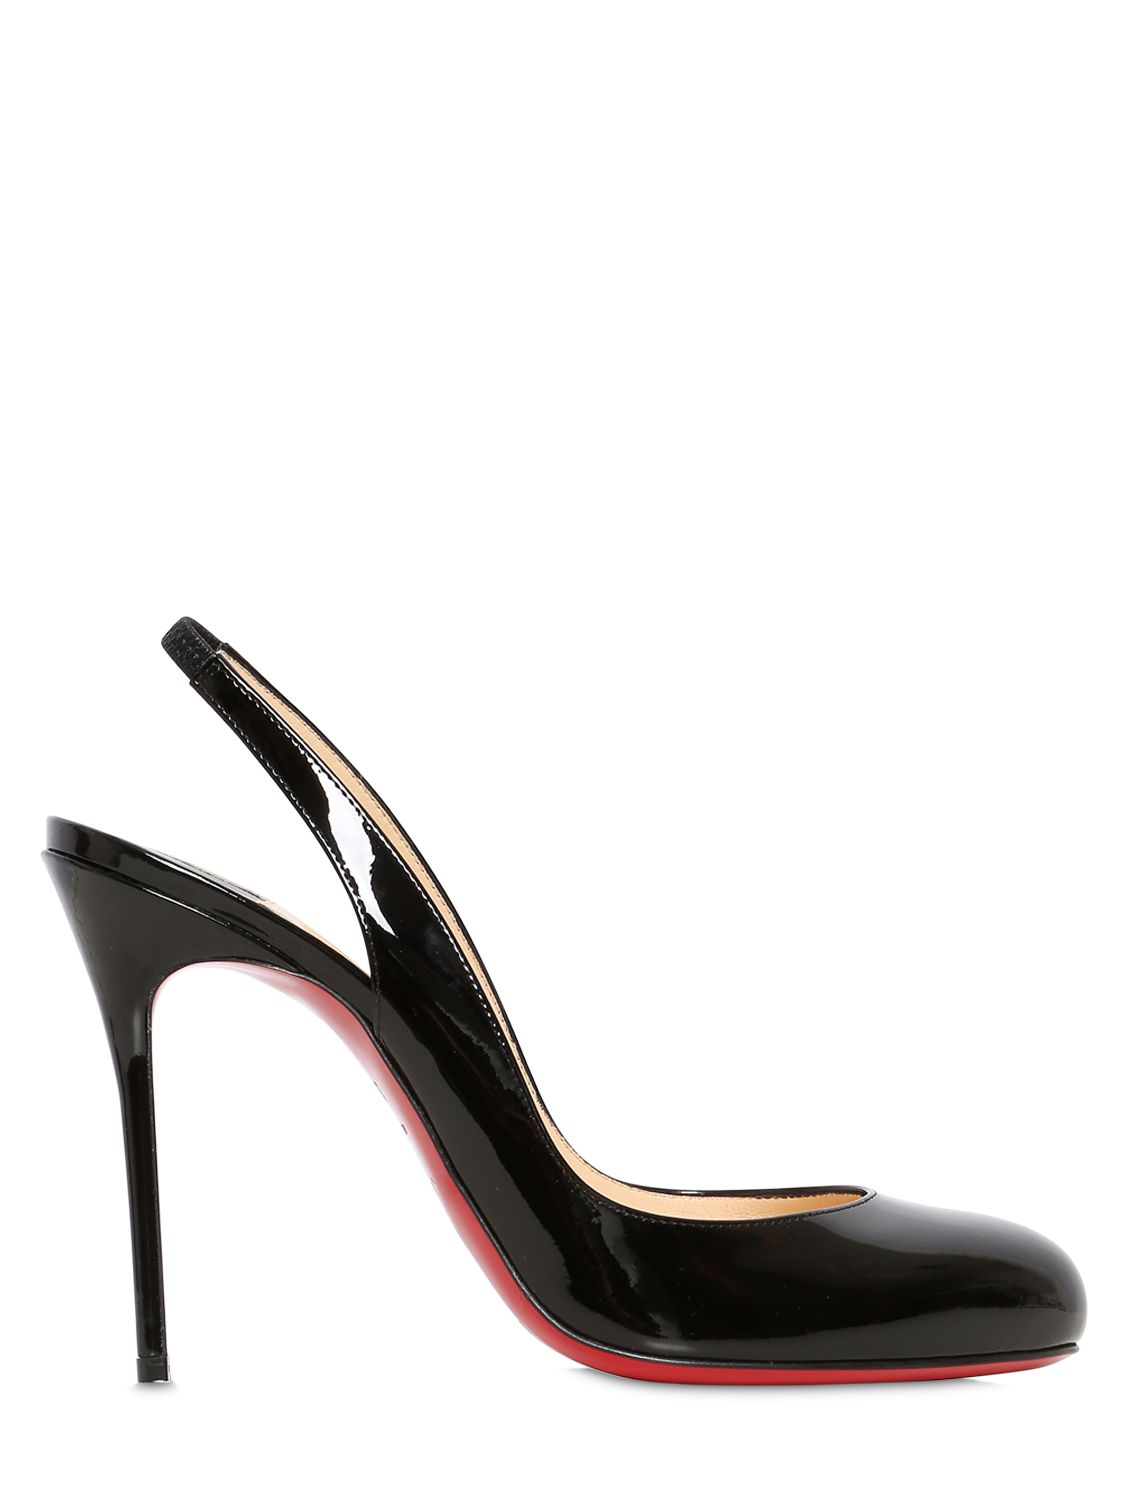 Christian louboutin Fifi Patent Leather Slingback Pumps in Black ...